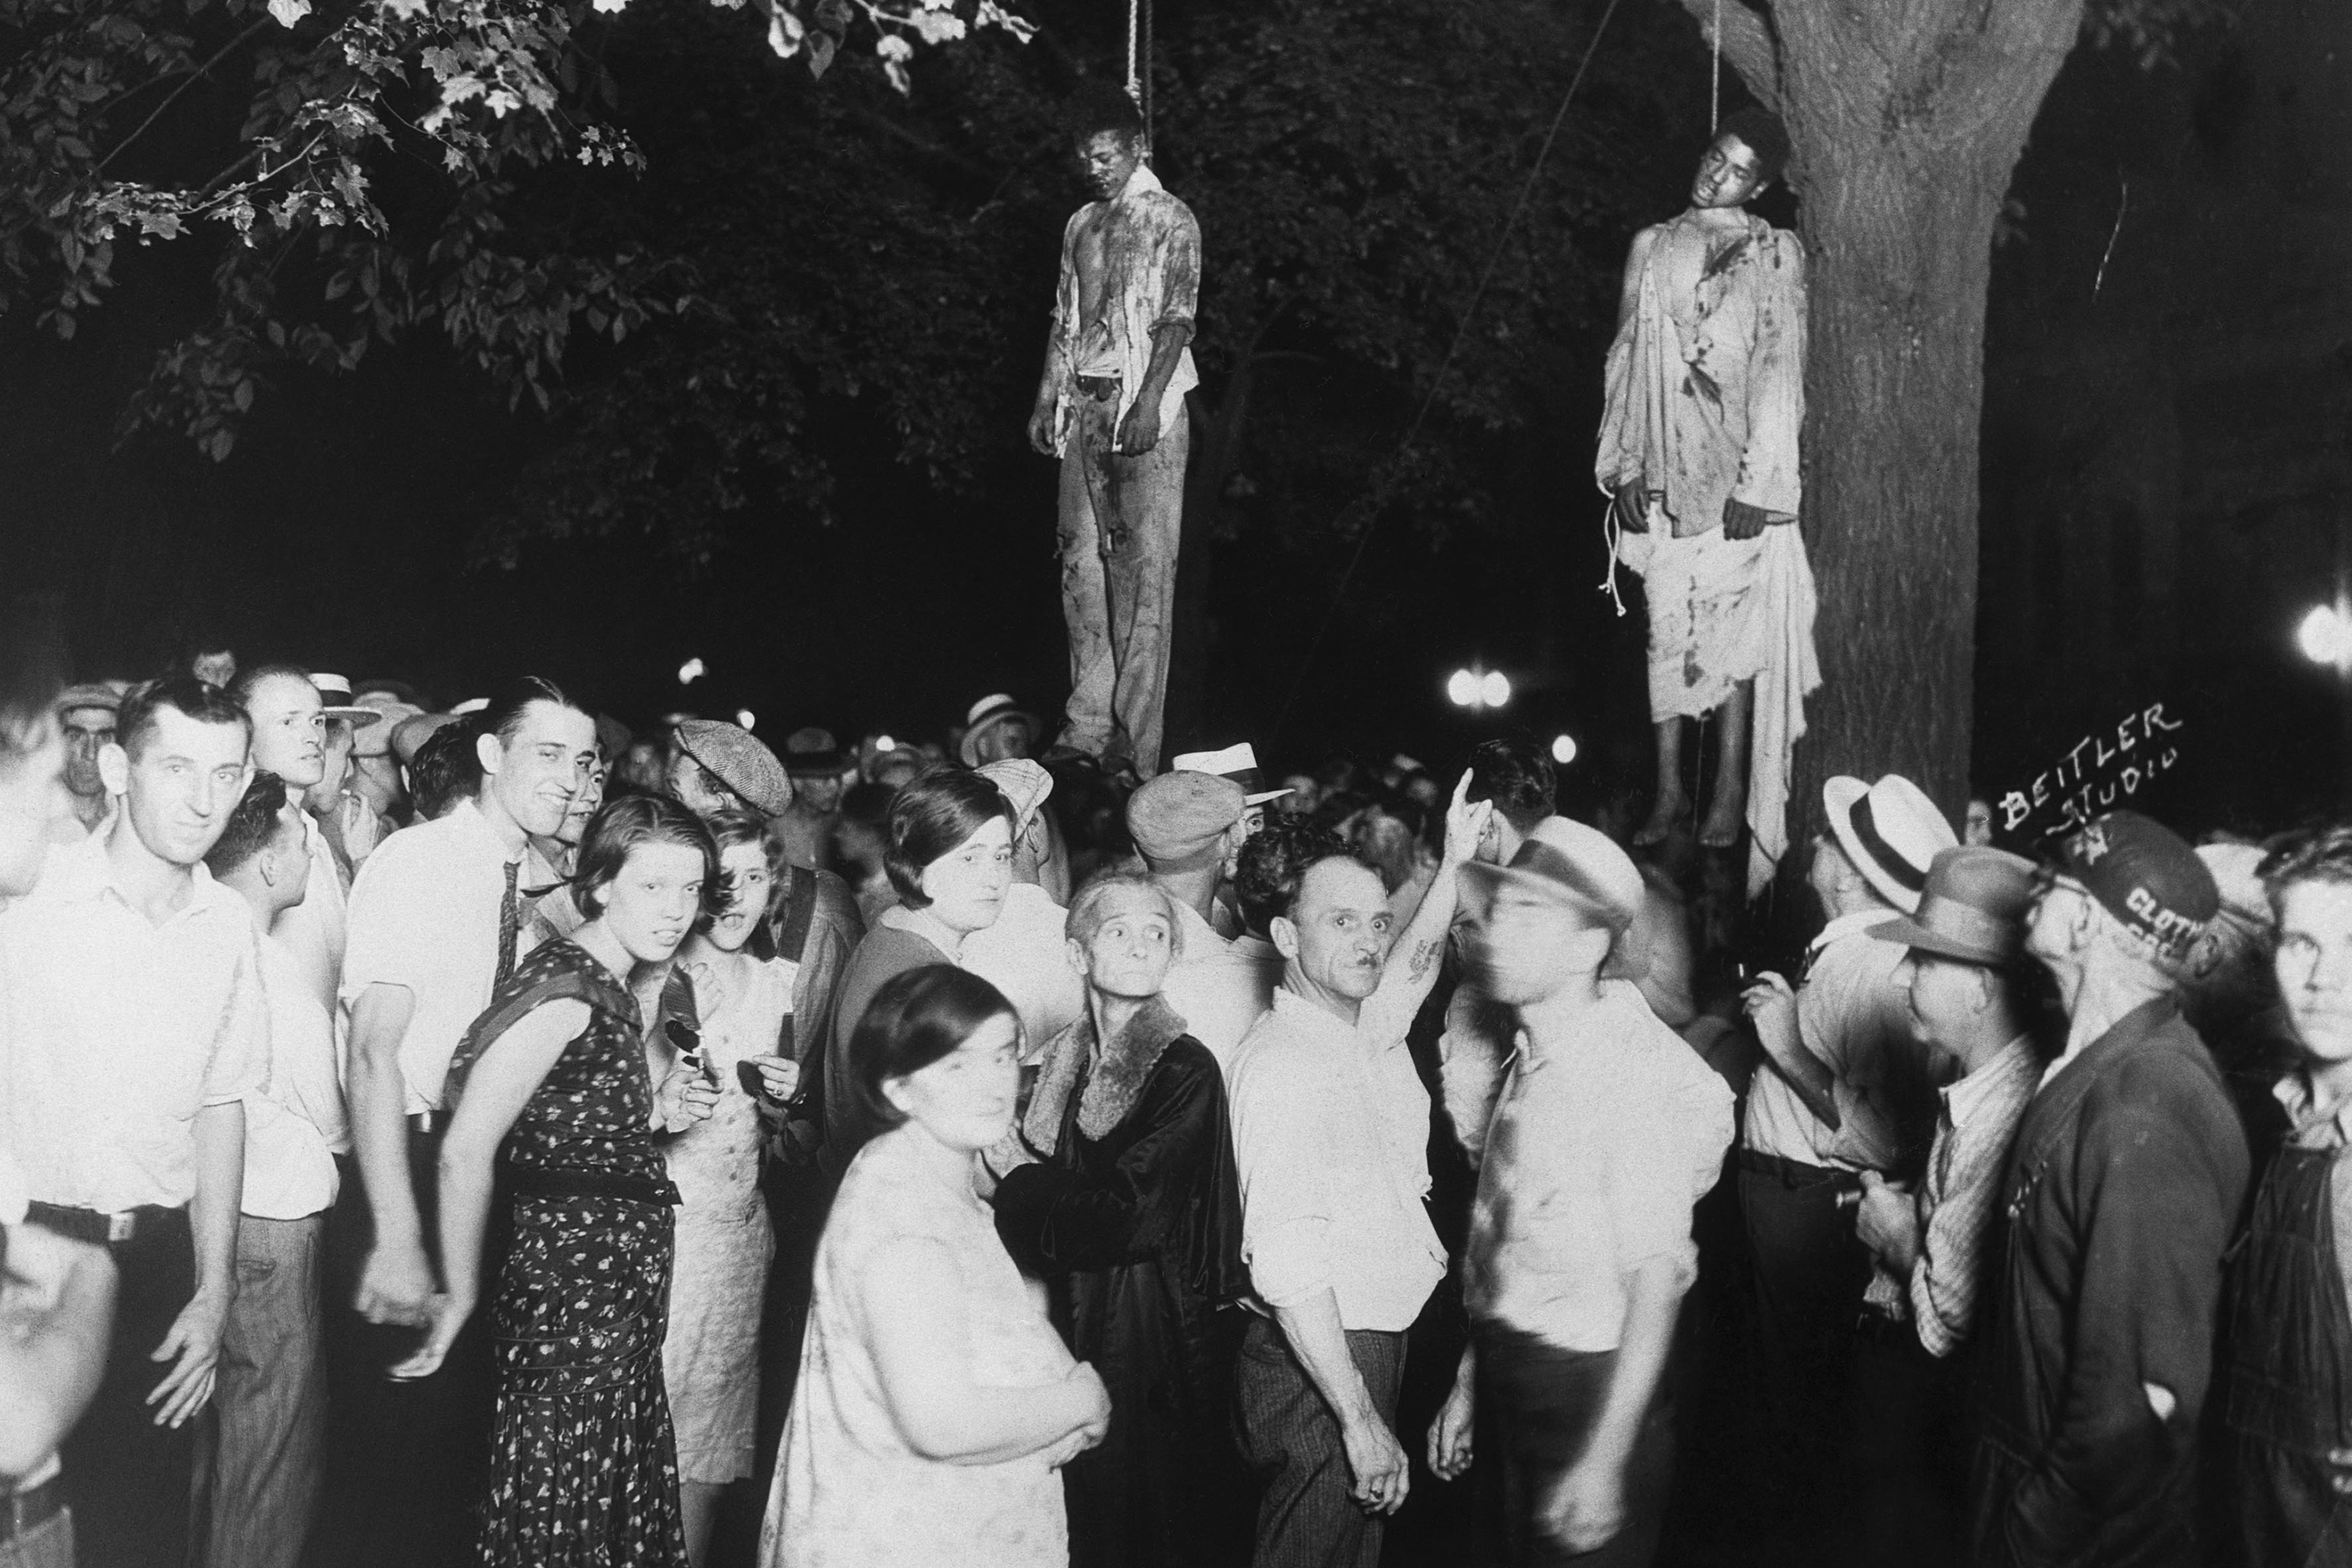 7 August 1930: After being accused of murdering Claude Deeter and raping his girlfriend Mary Ball, Thomas Shipp and Abram Smith were taken from the Grand County Jail and publicly lynched. (Photographed by Lawrence Beitler)